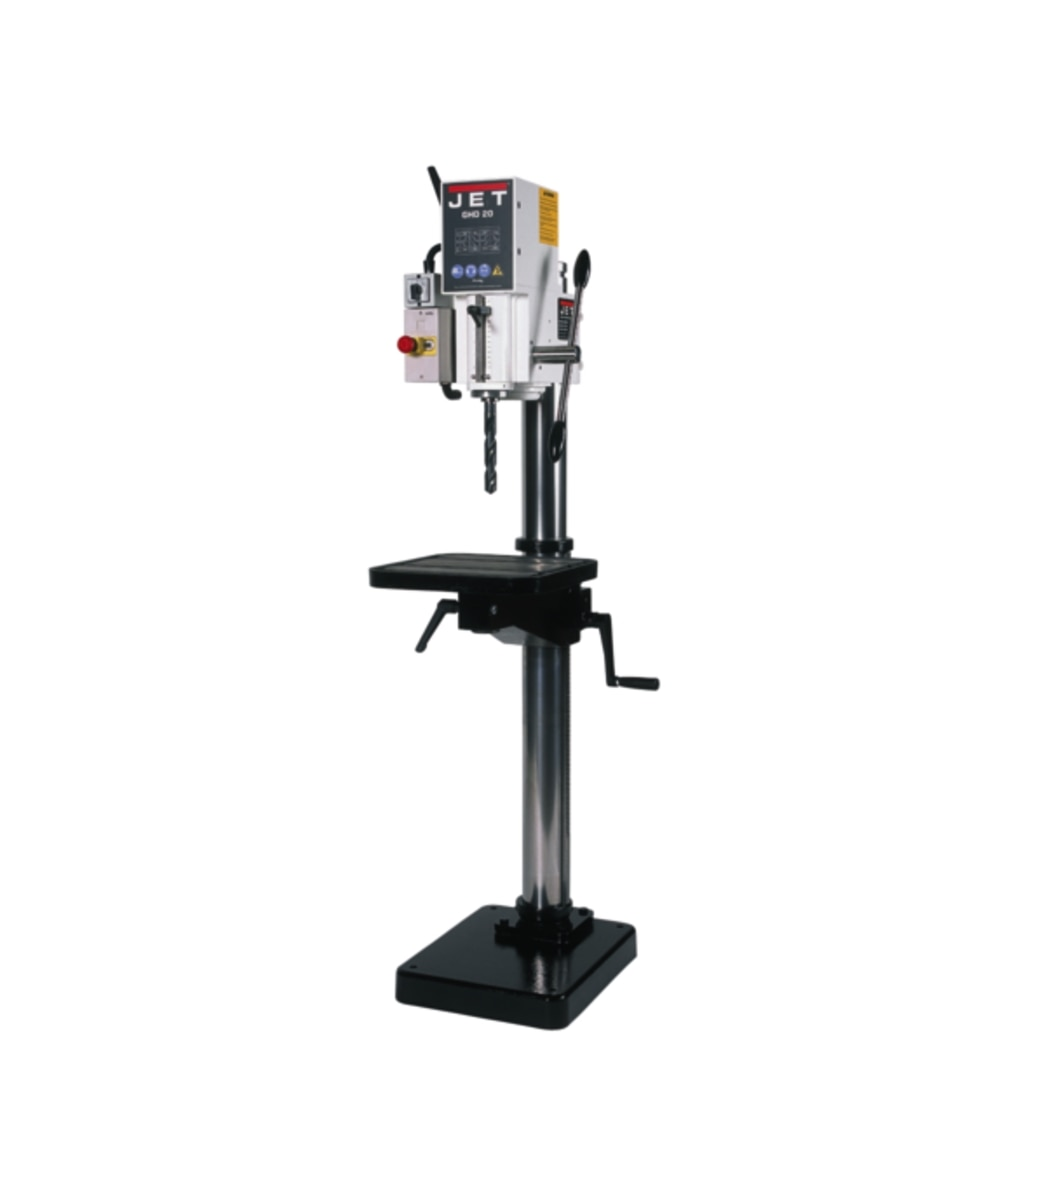 "J-A4008M-PF4, 26"" Arboga Gear Head Drill Press With Power Down feed 440V, 3Ph"